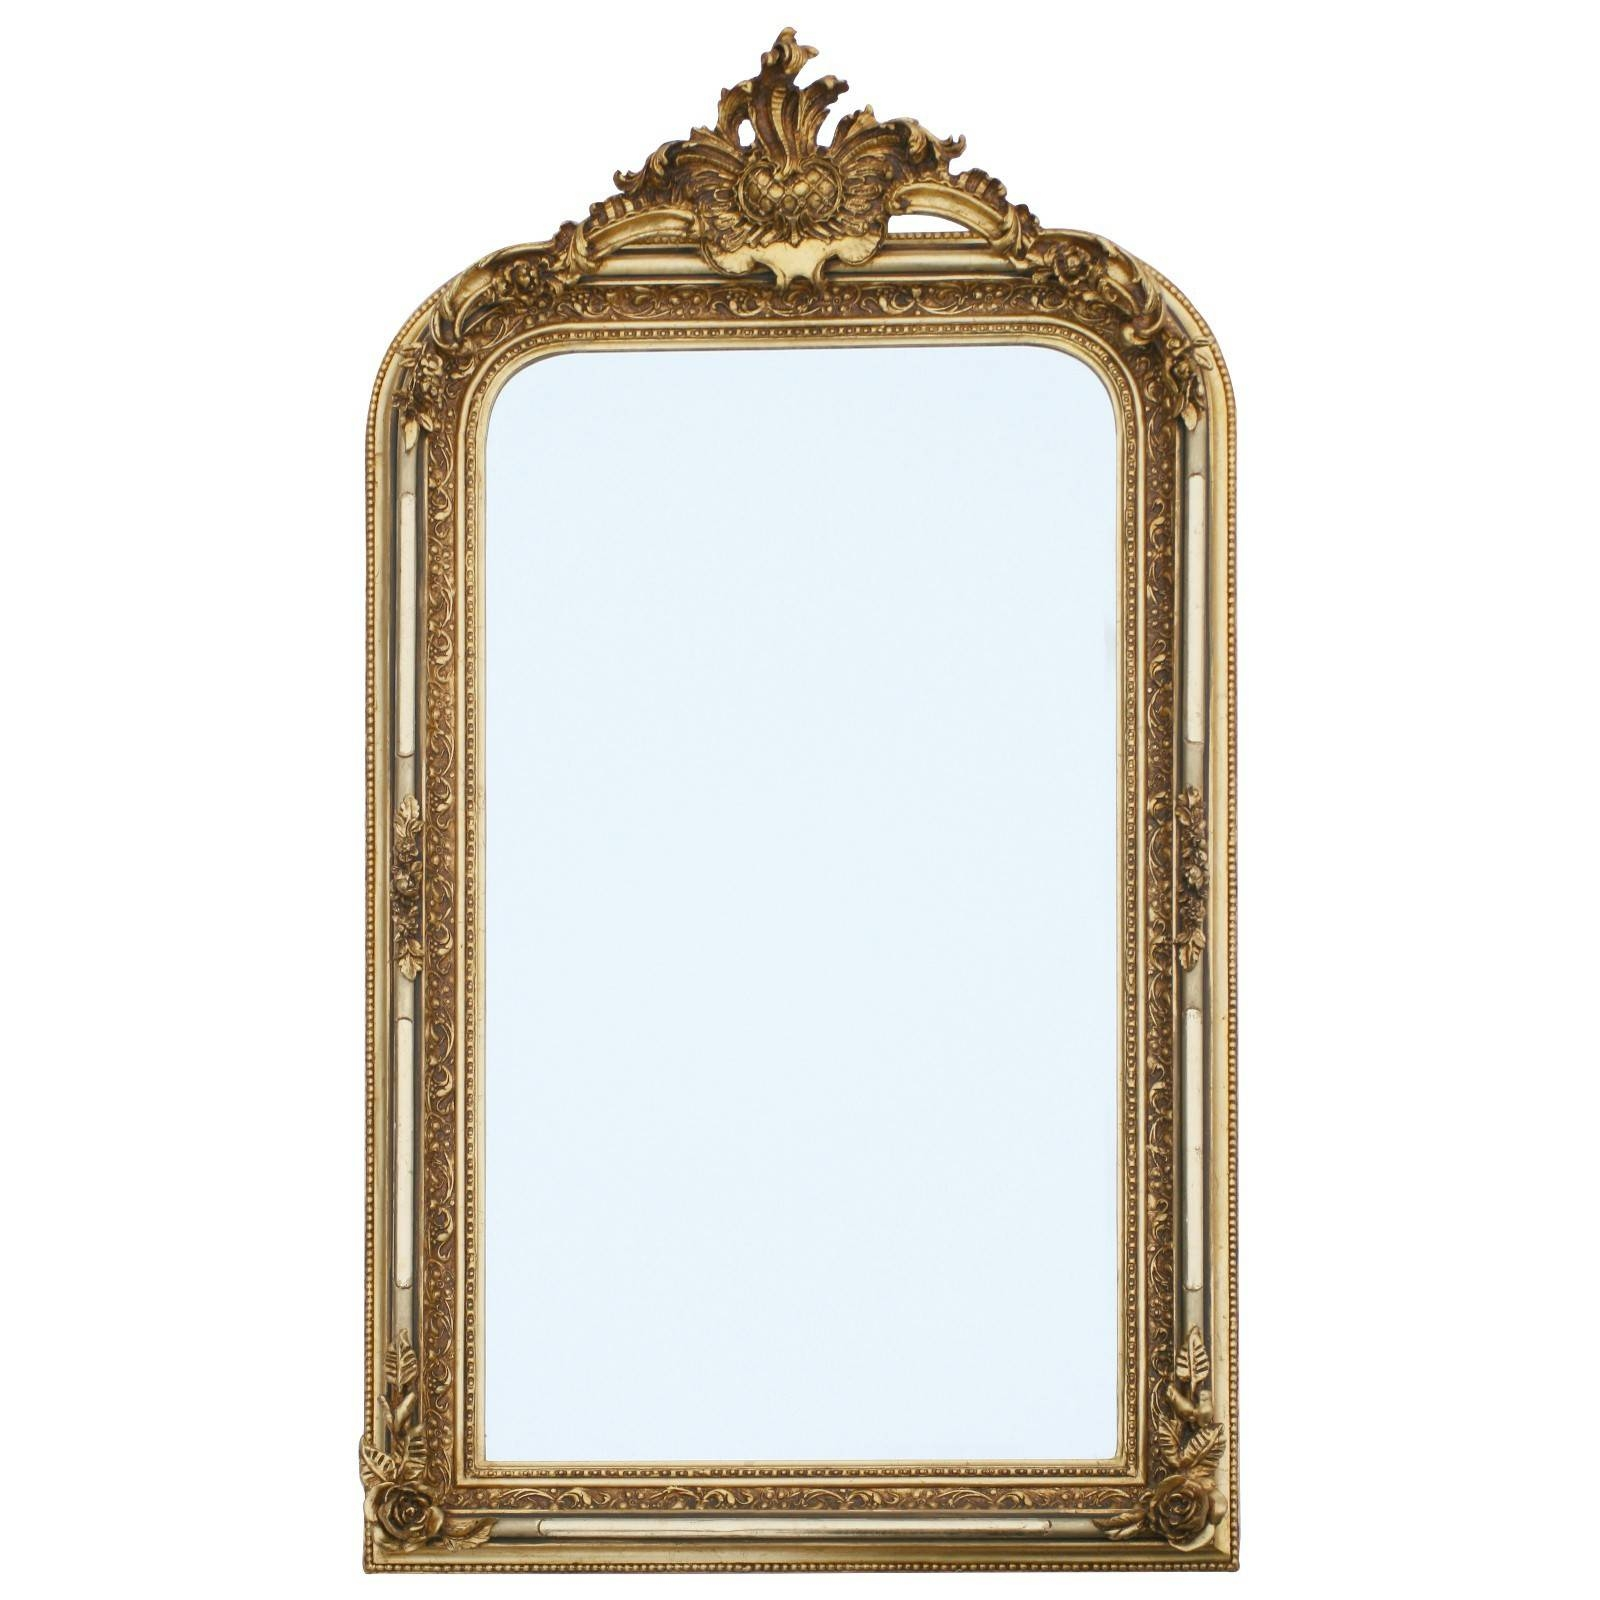 Wall Mirror Large Ostentatious Luxury Baroque Mirror With Bevelled intended for Large Baroque Mirrors (Image 25 of 25)